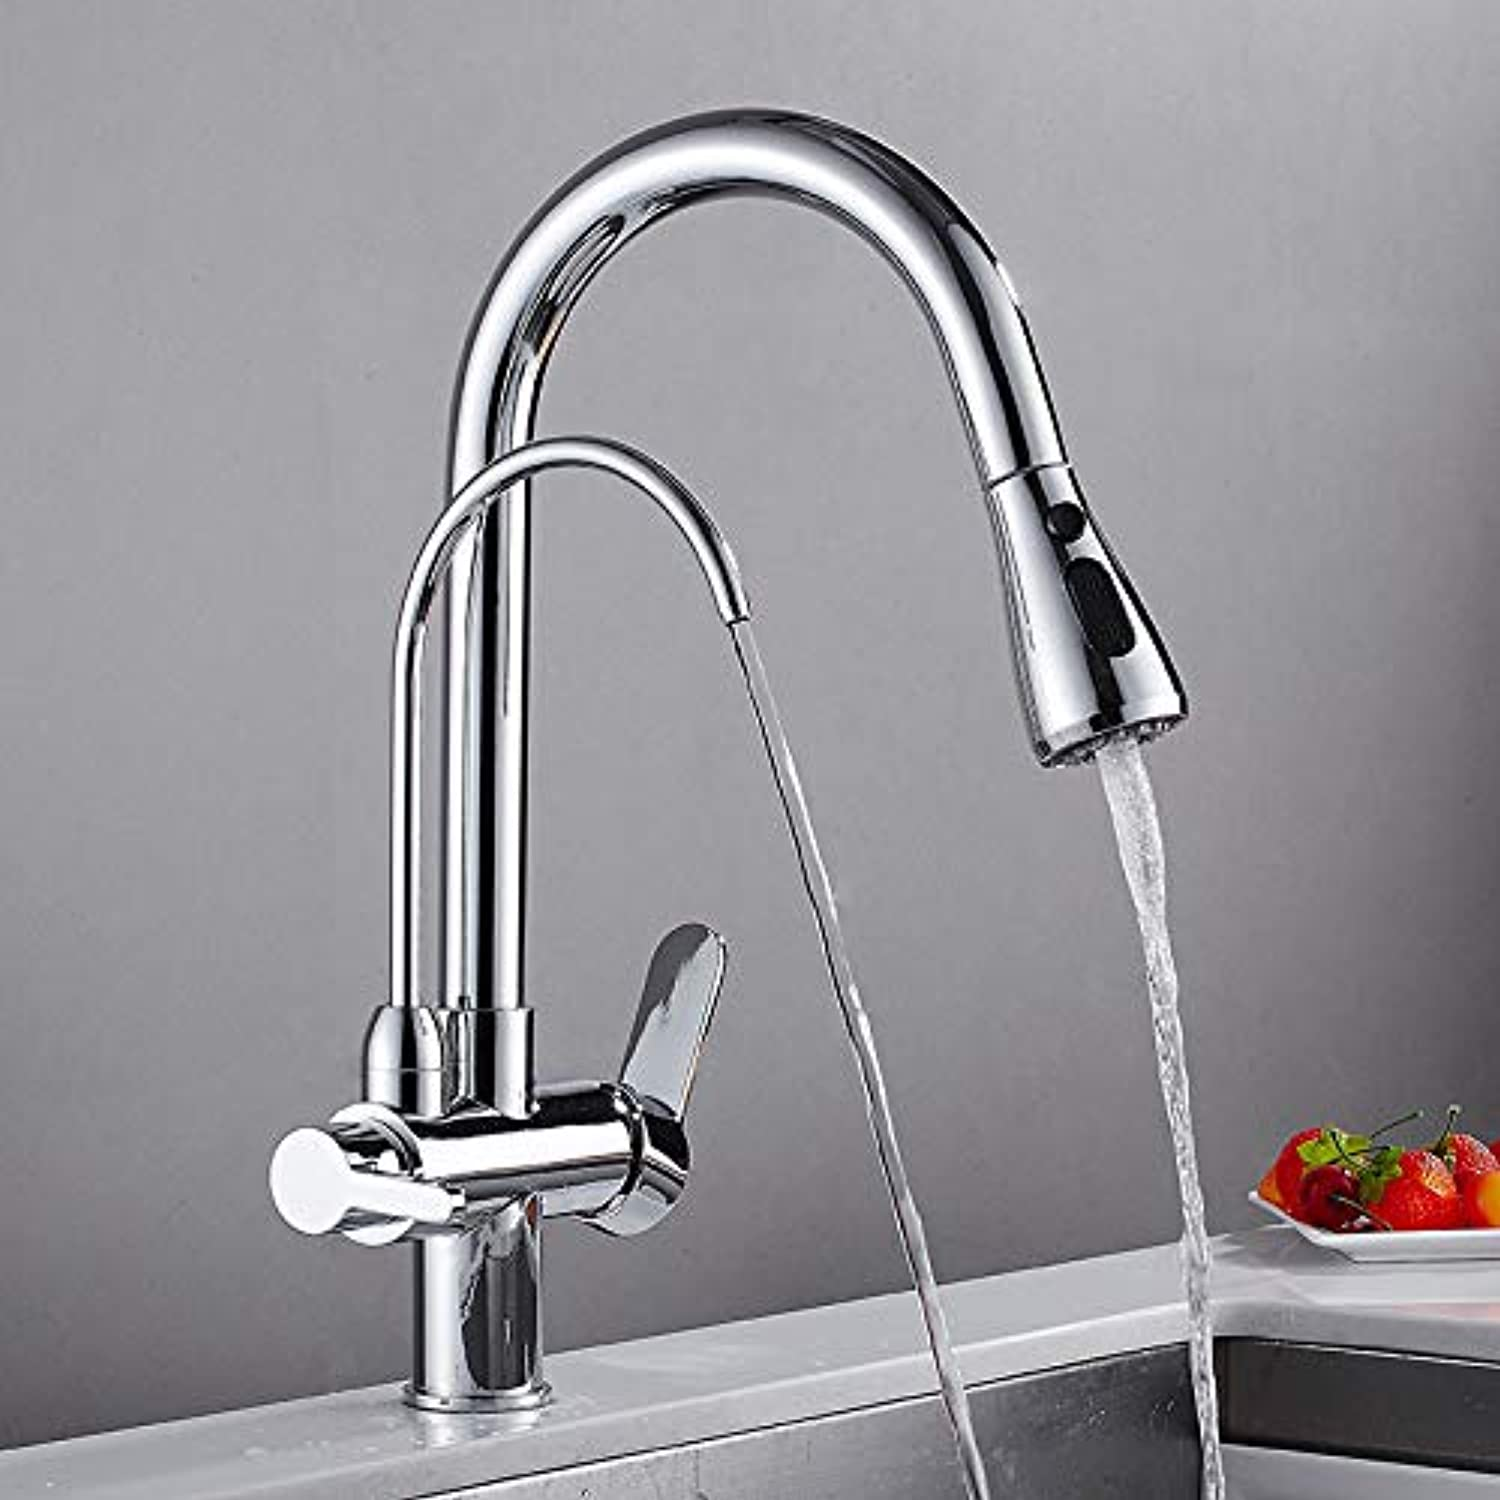 redOOY Taps Kitchen Multi-Function Kitchen Water Purifier Faucet Pull The Sink Faucet Can Switch Double Water Hot And Cold Water